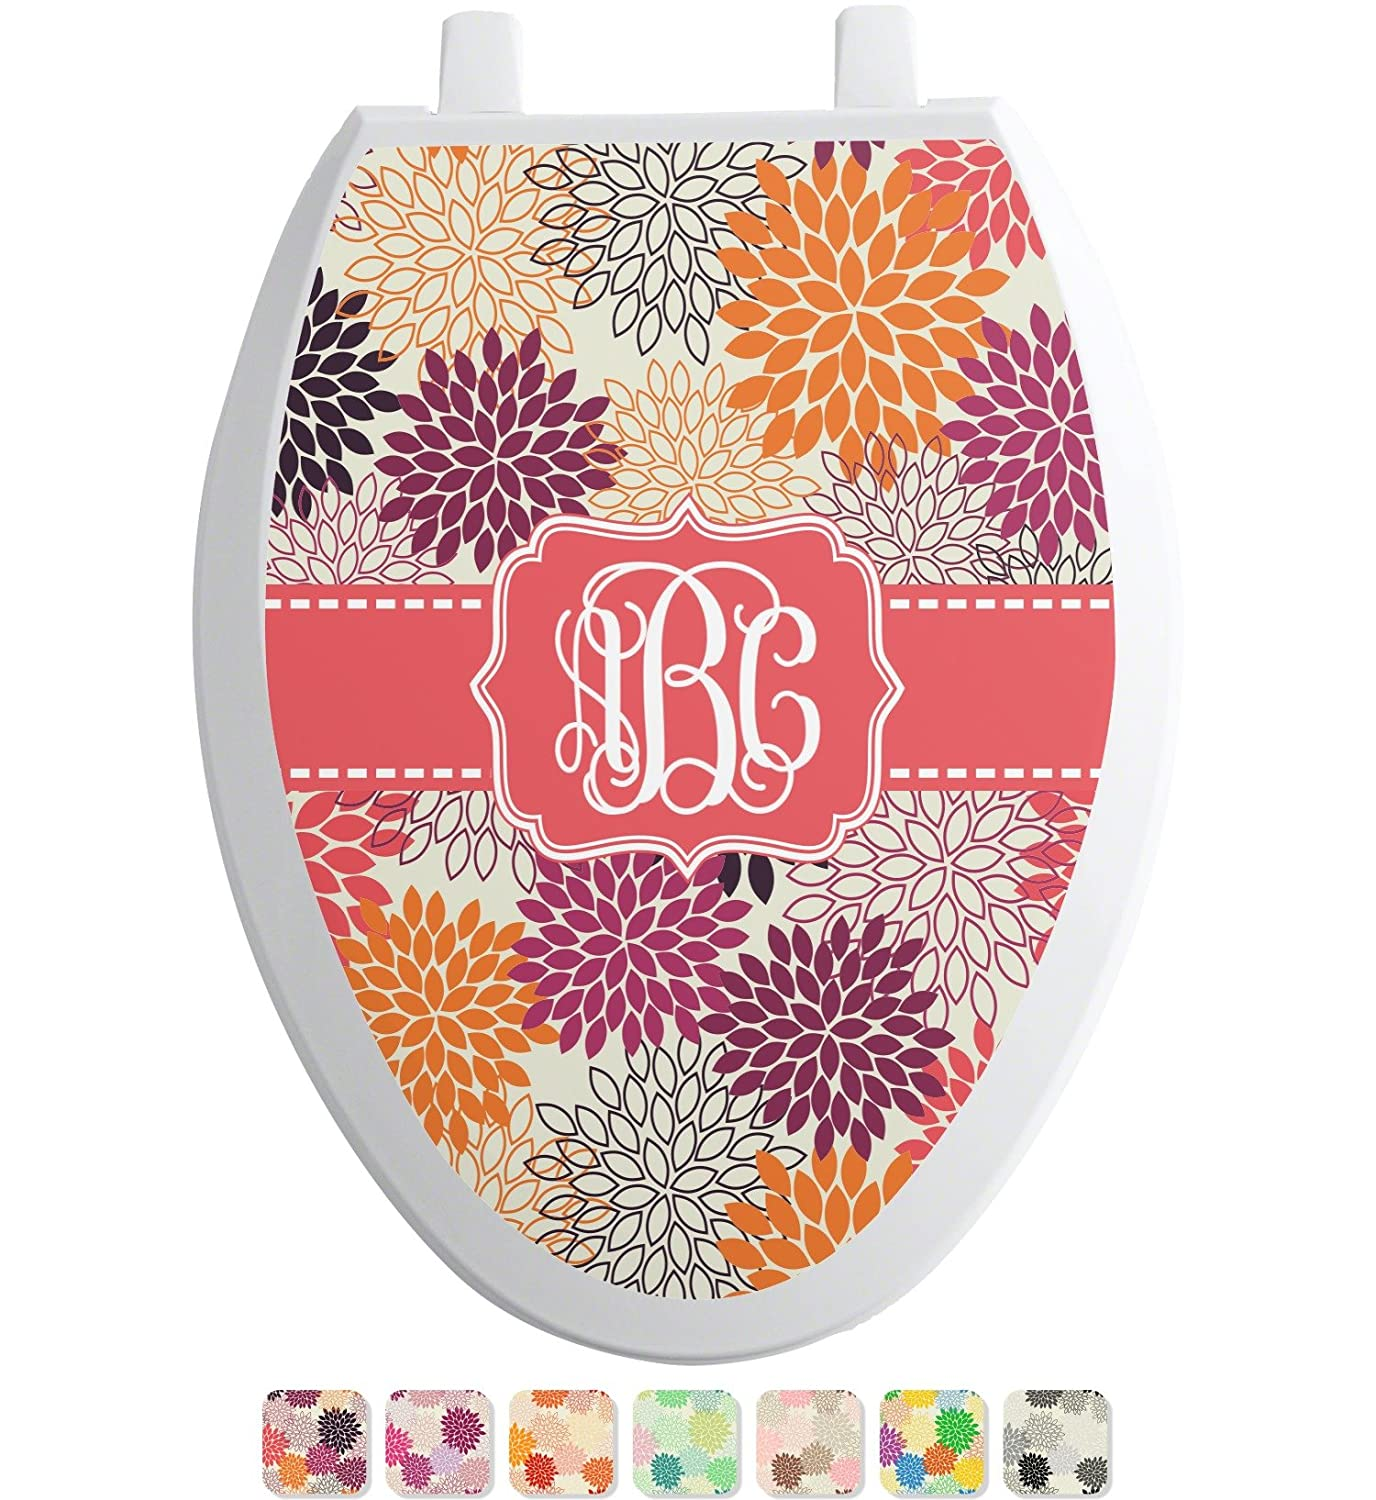 70%OFF Mums Flower Toilet Seat Decal - Elongated (Personalized)